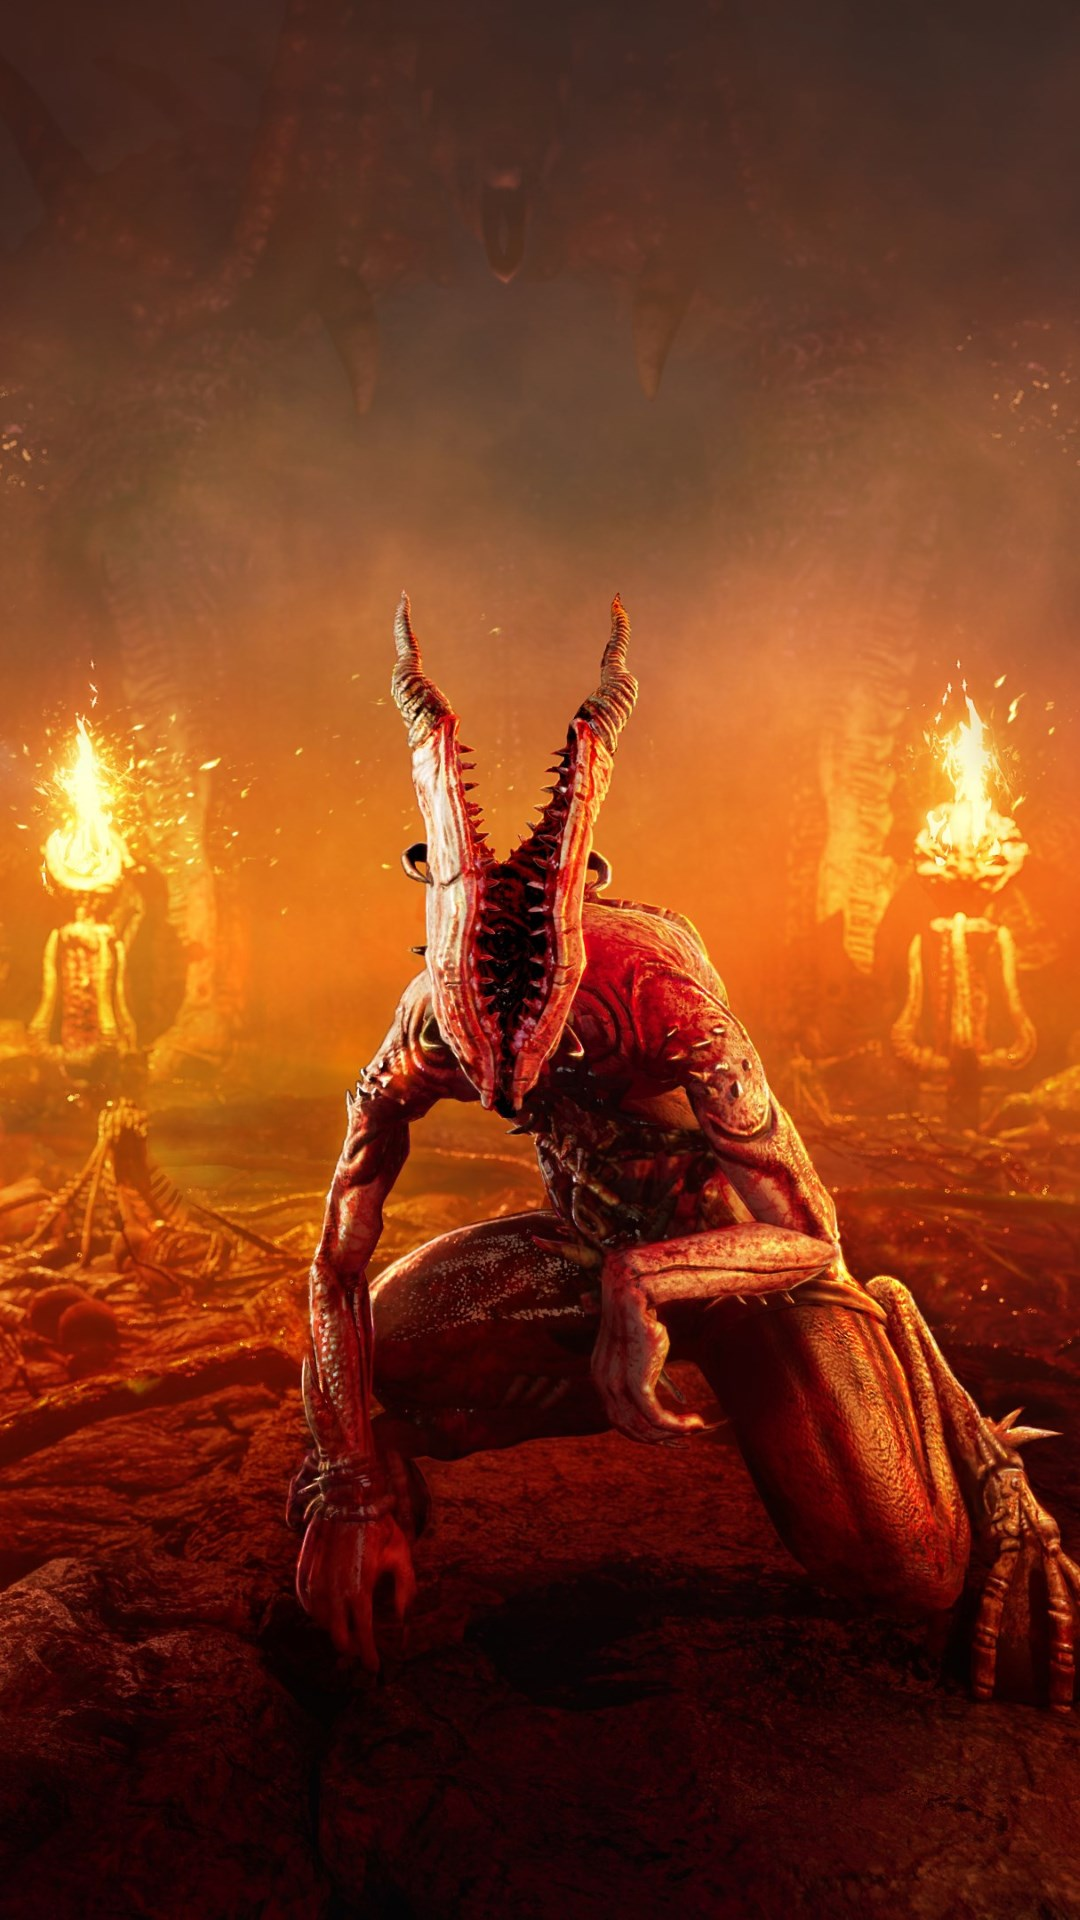 Download wallpaper: Agony, the video game 1080x1920